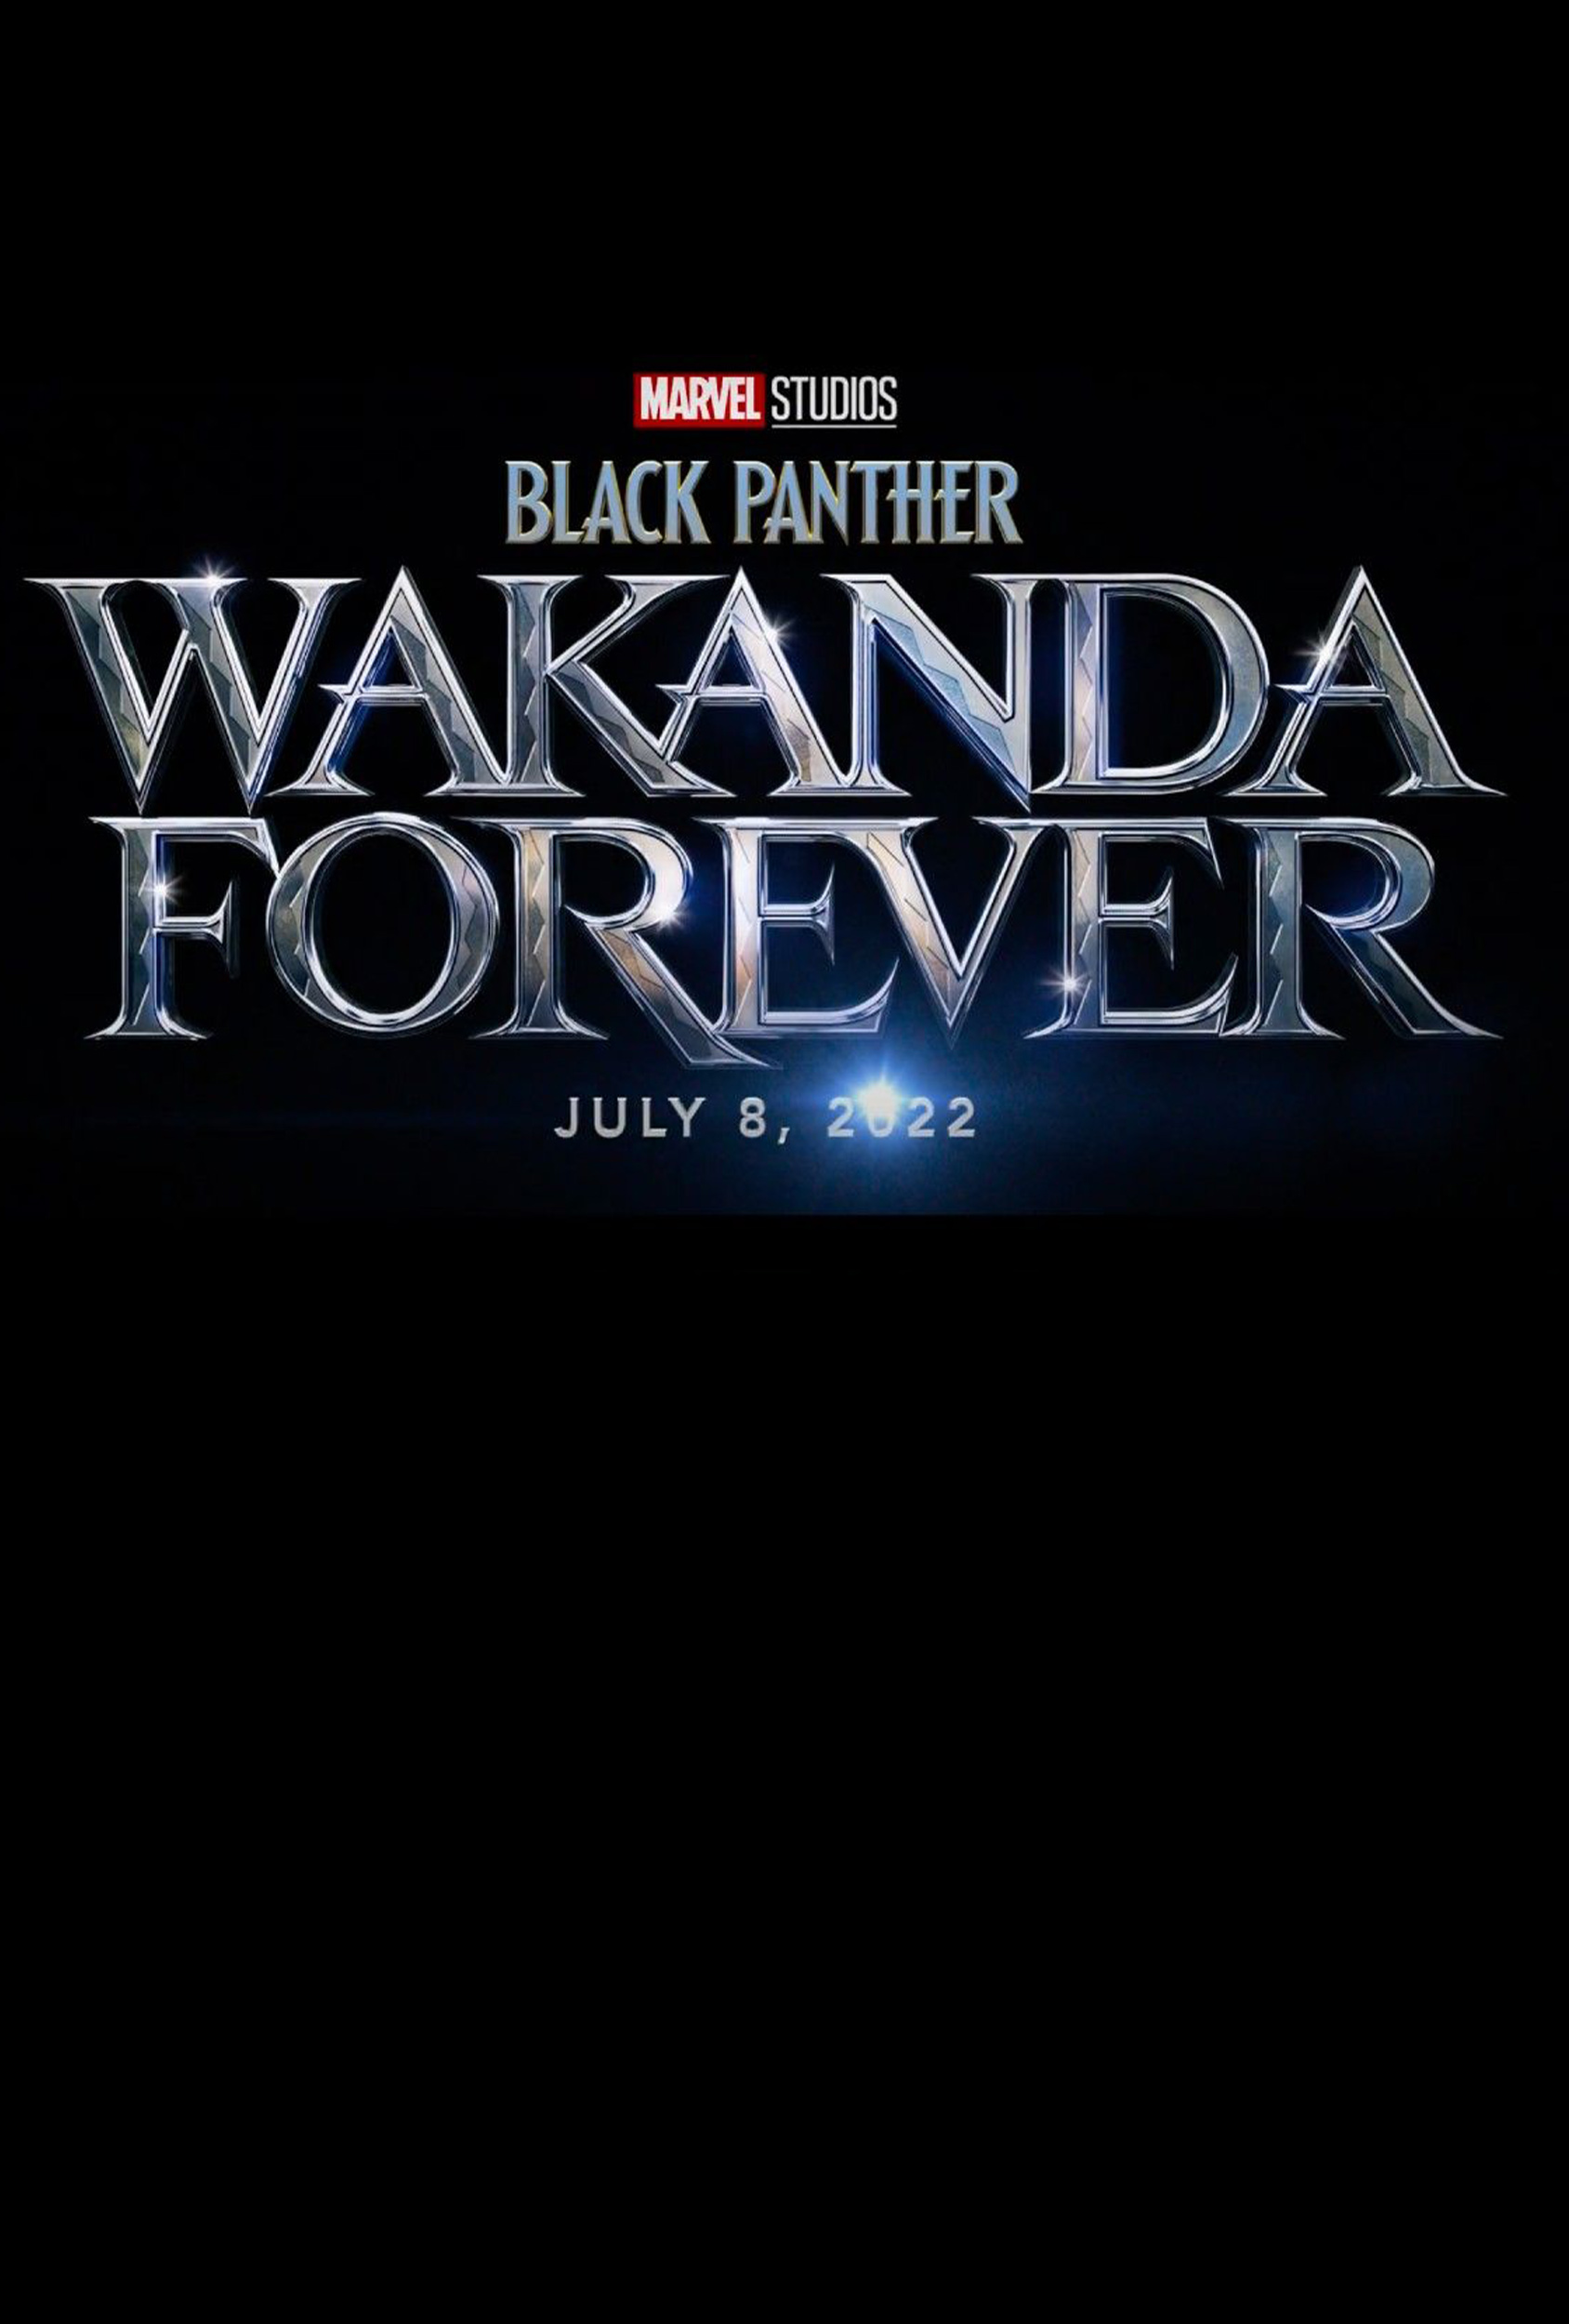 Affiche Black Panther 2: Wakanda Forever